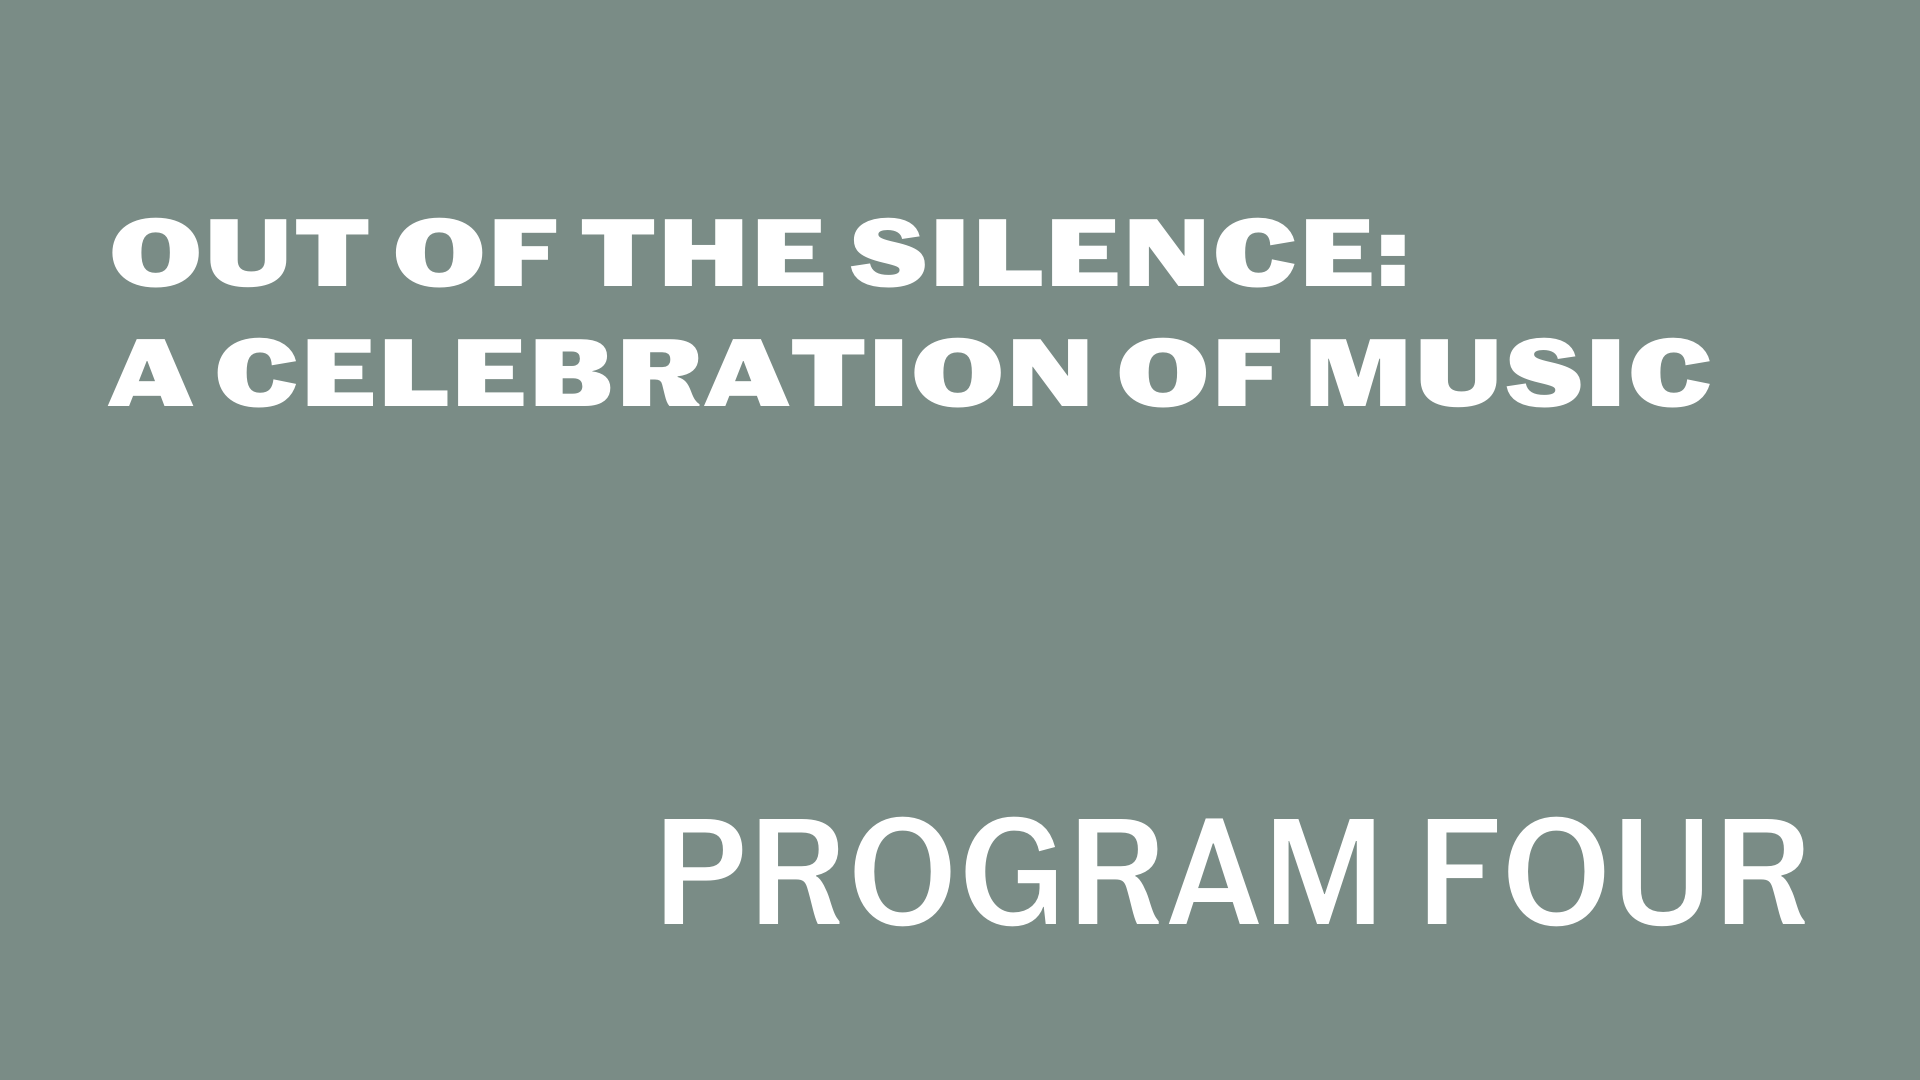 [Out of the Silence:A Celebration of MusicProgram Four]